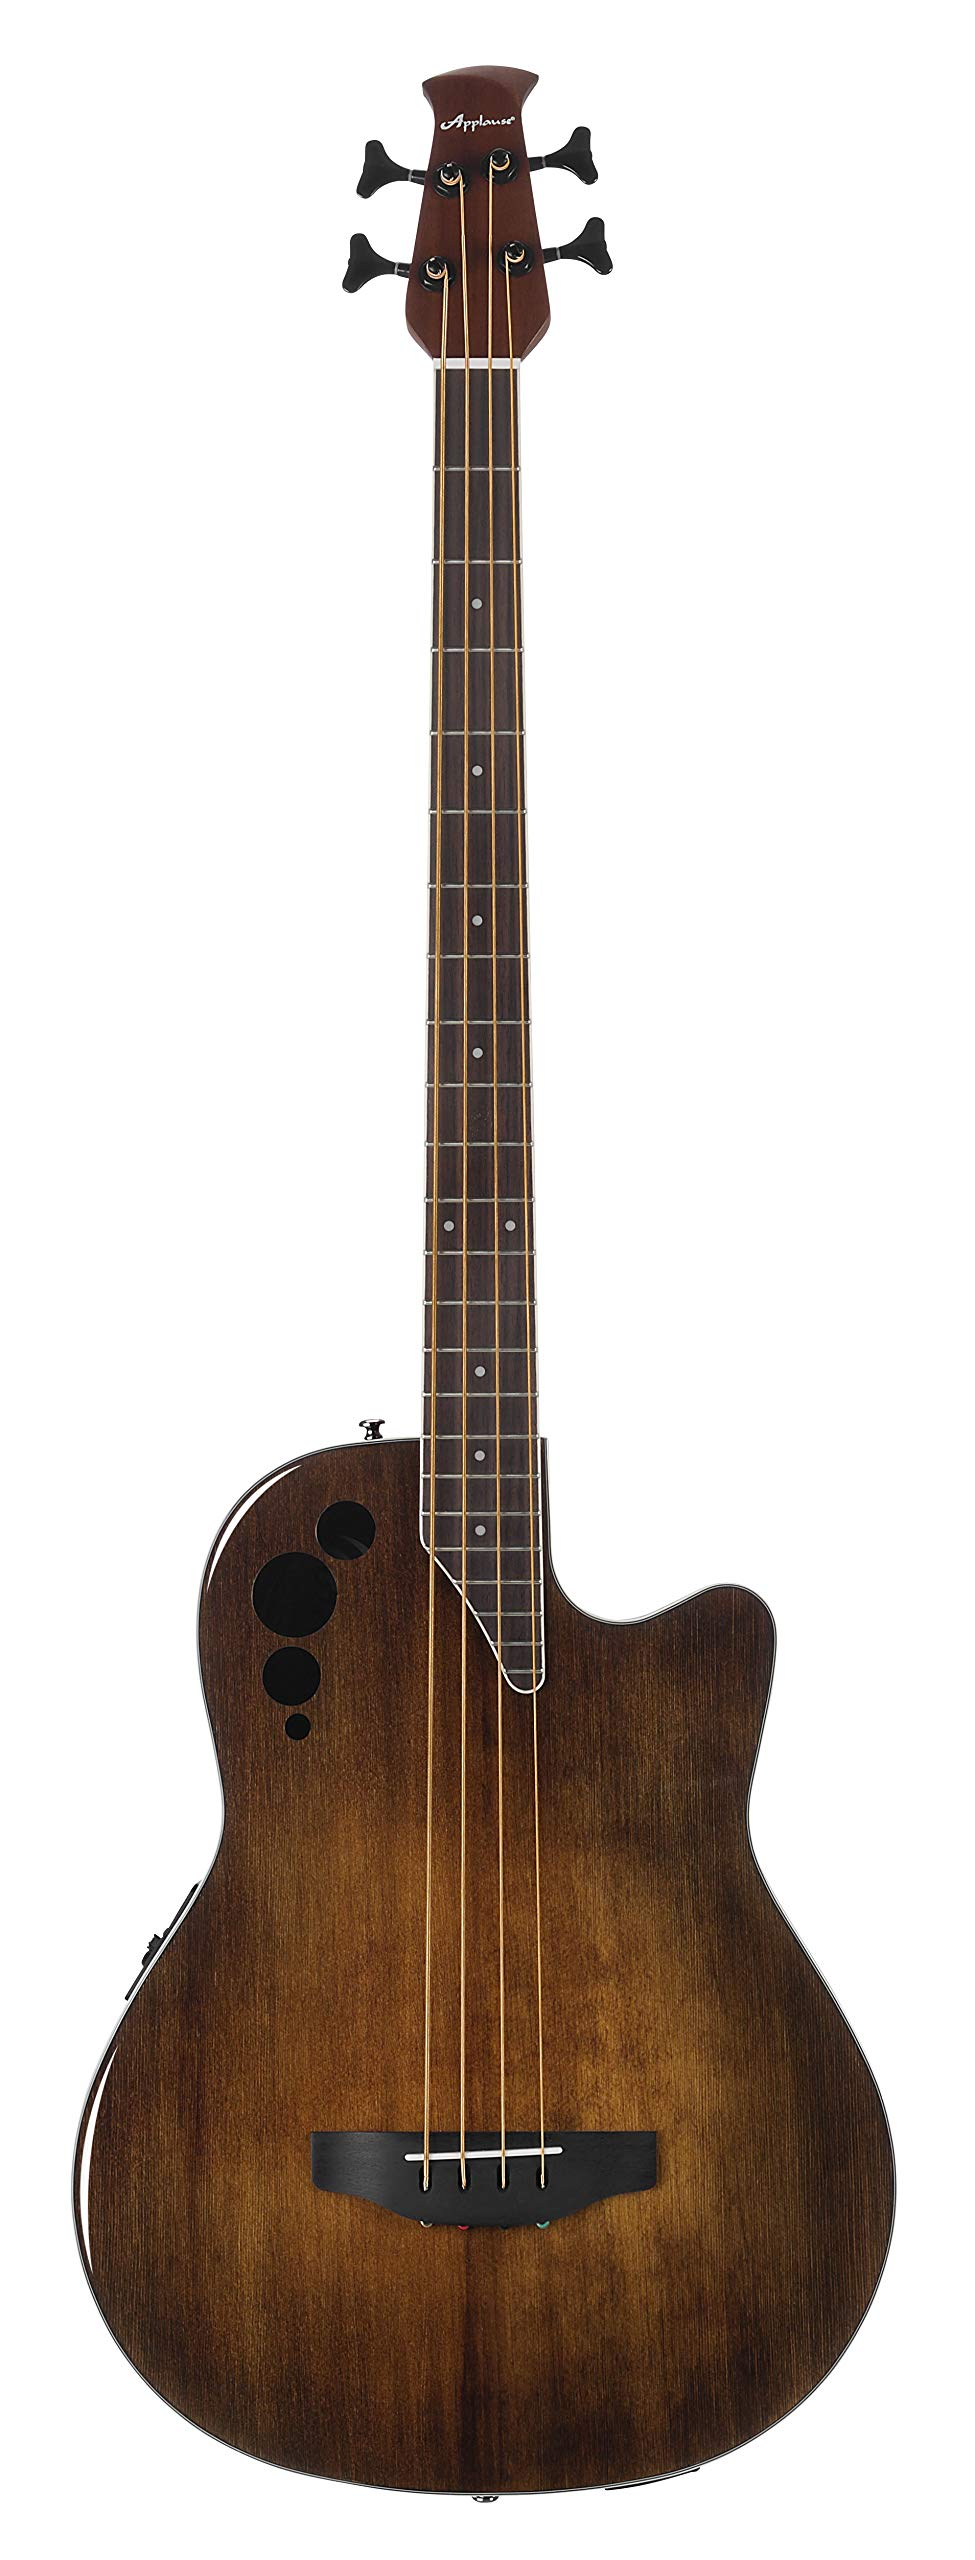 Ovation Applause 4 String Acoustic-Electric Bass Guitar, Right, Vintage Varnish (AEB4II-VV) by Ovation